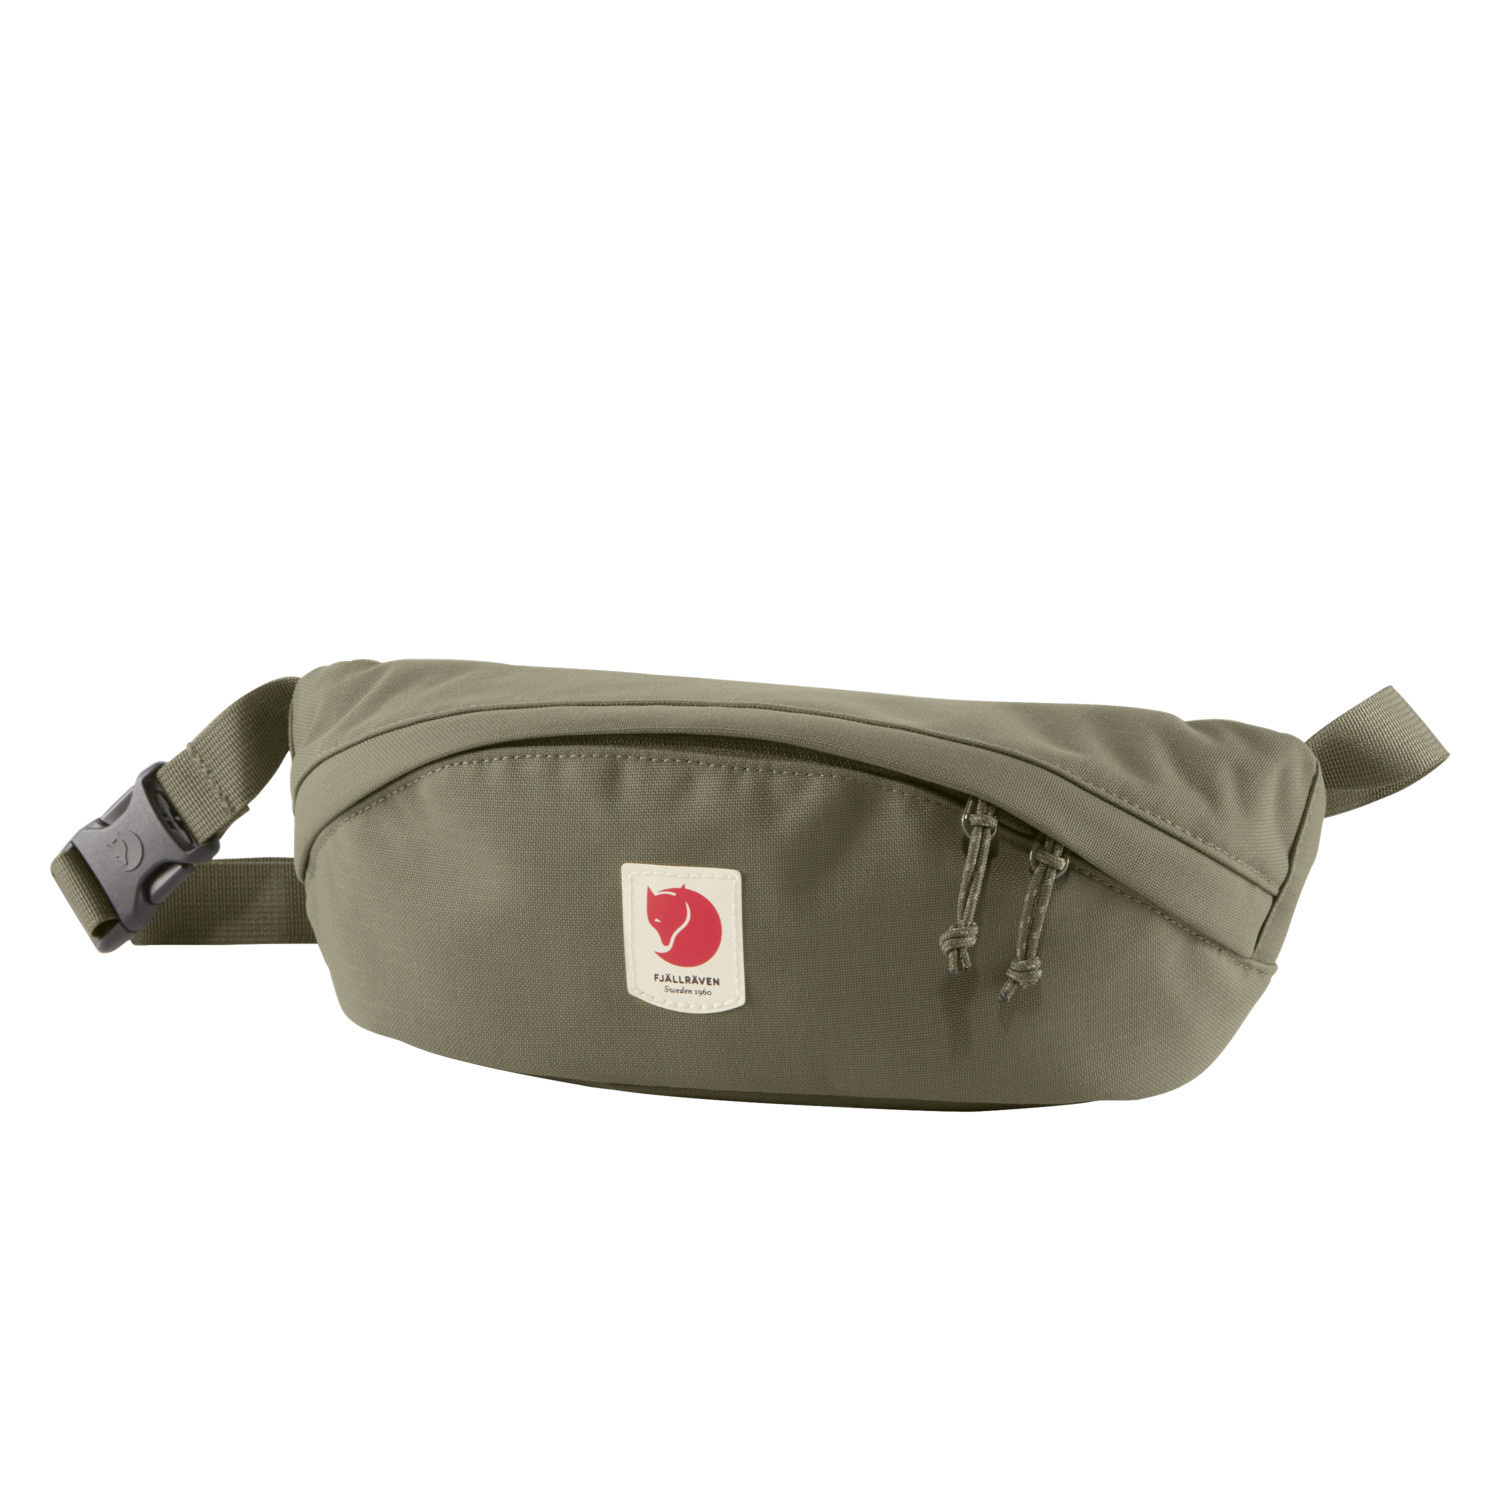 Fjällräven Ulvö Hip Pack Medium Laurel Green-1